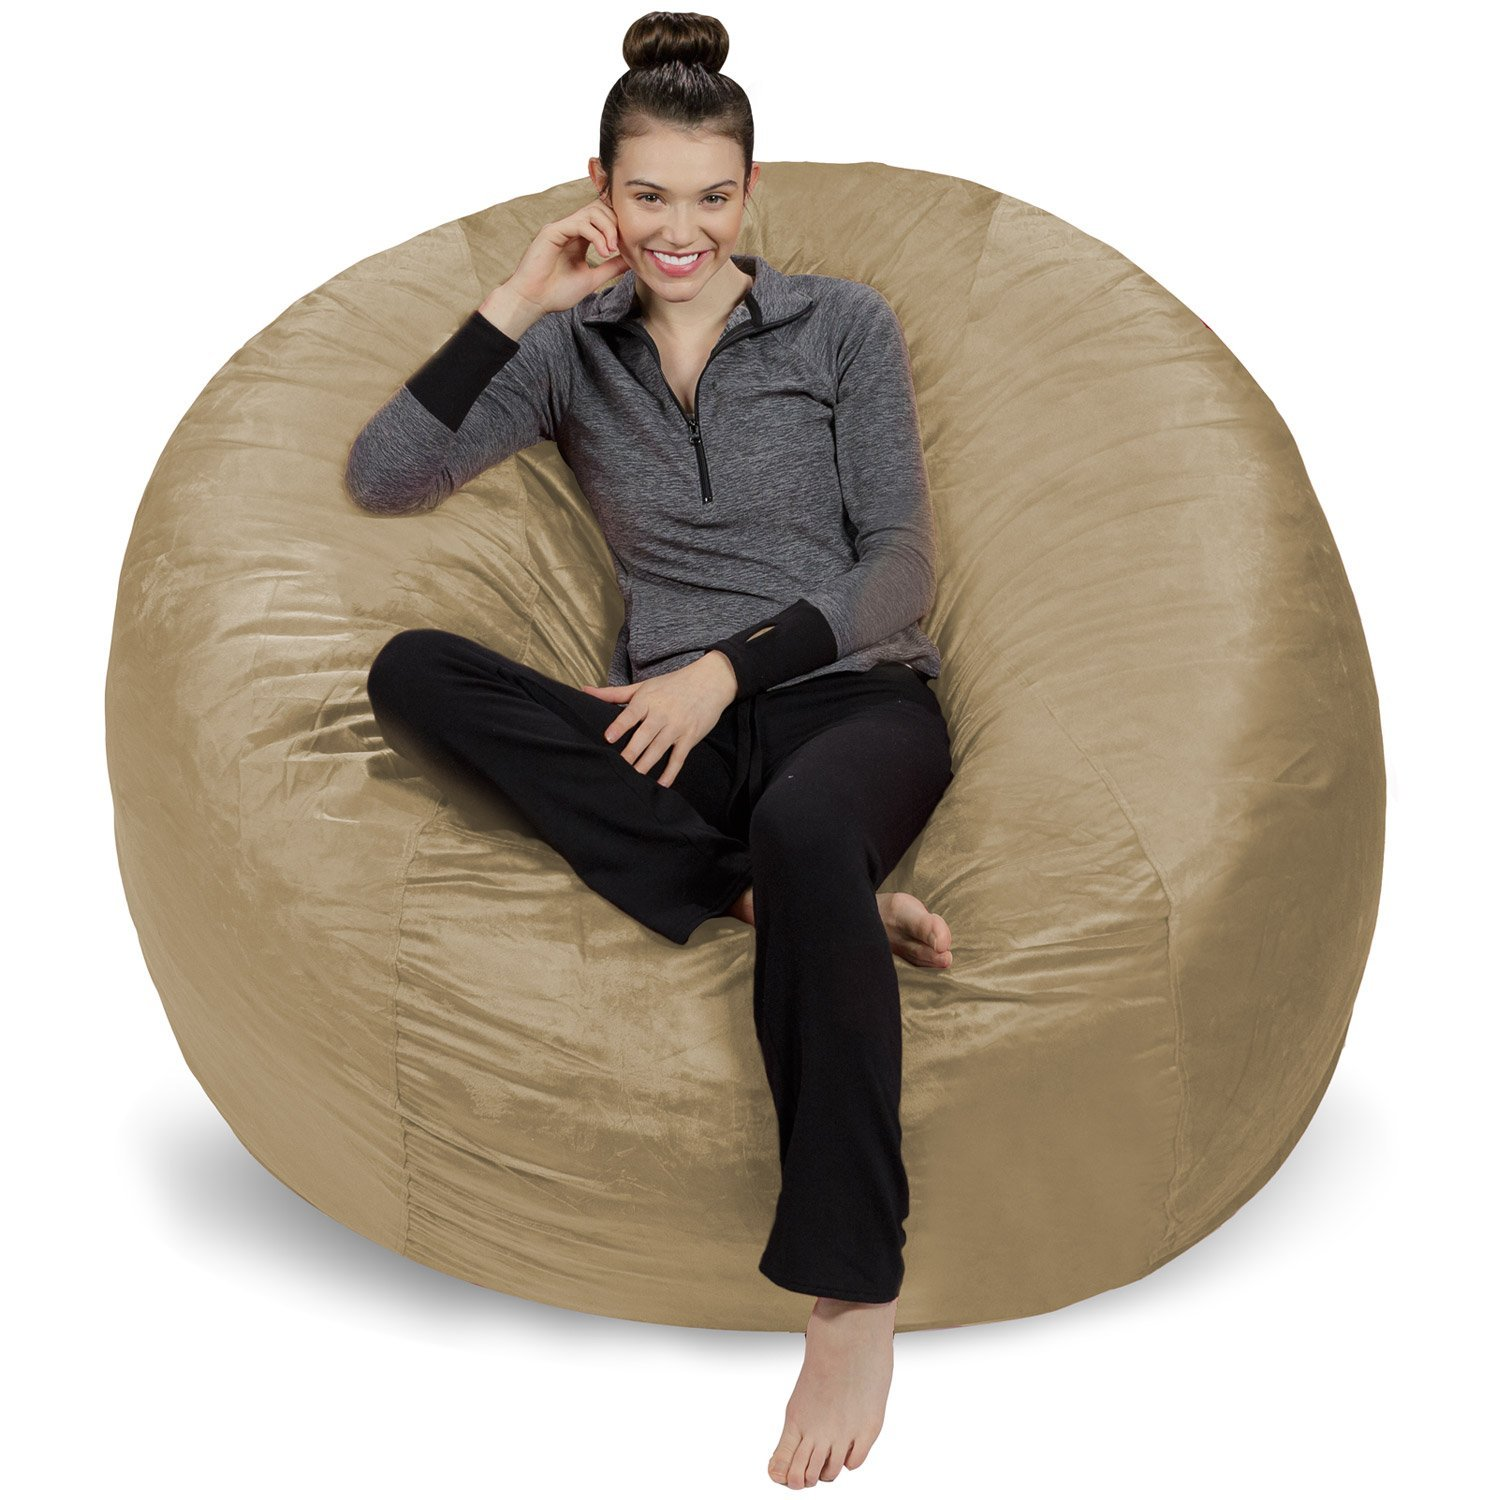 Sofa Sack-Bean BagsGiant Bean Bag, 6', Camel